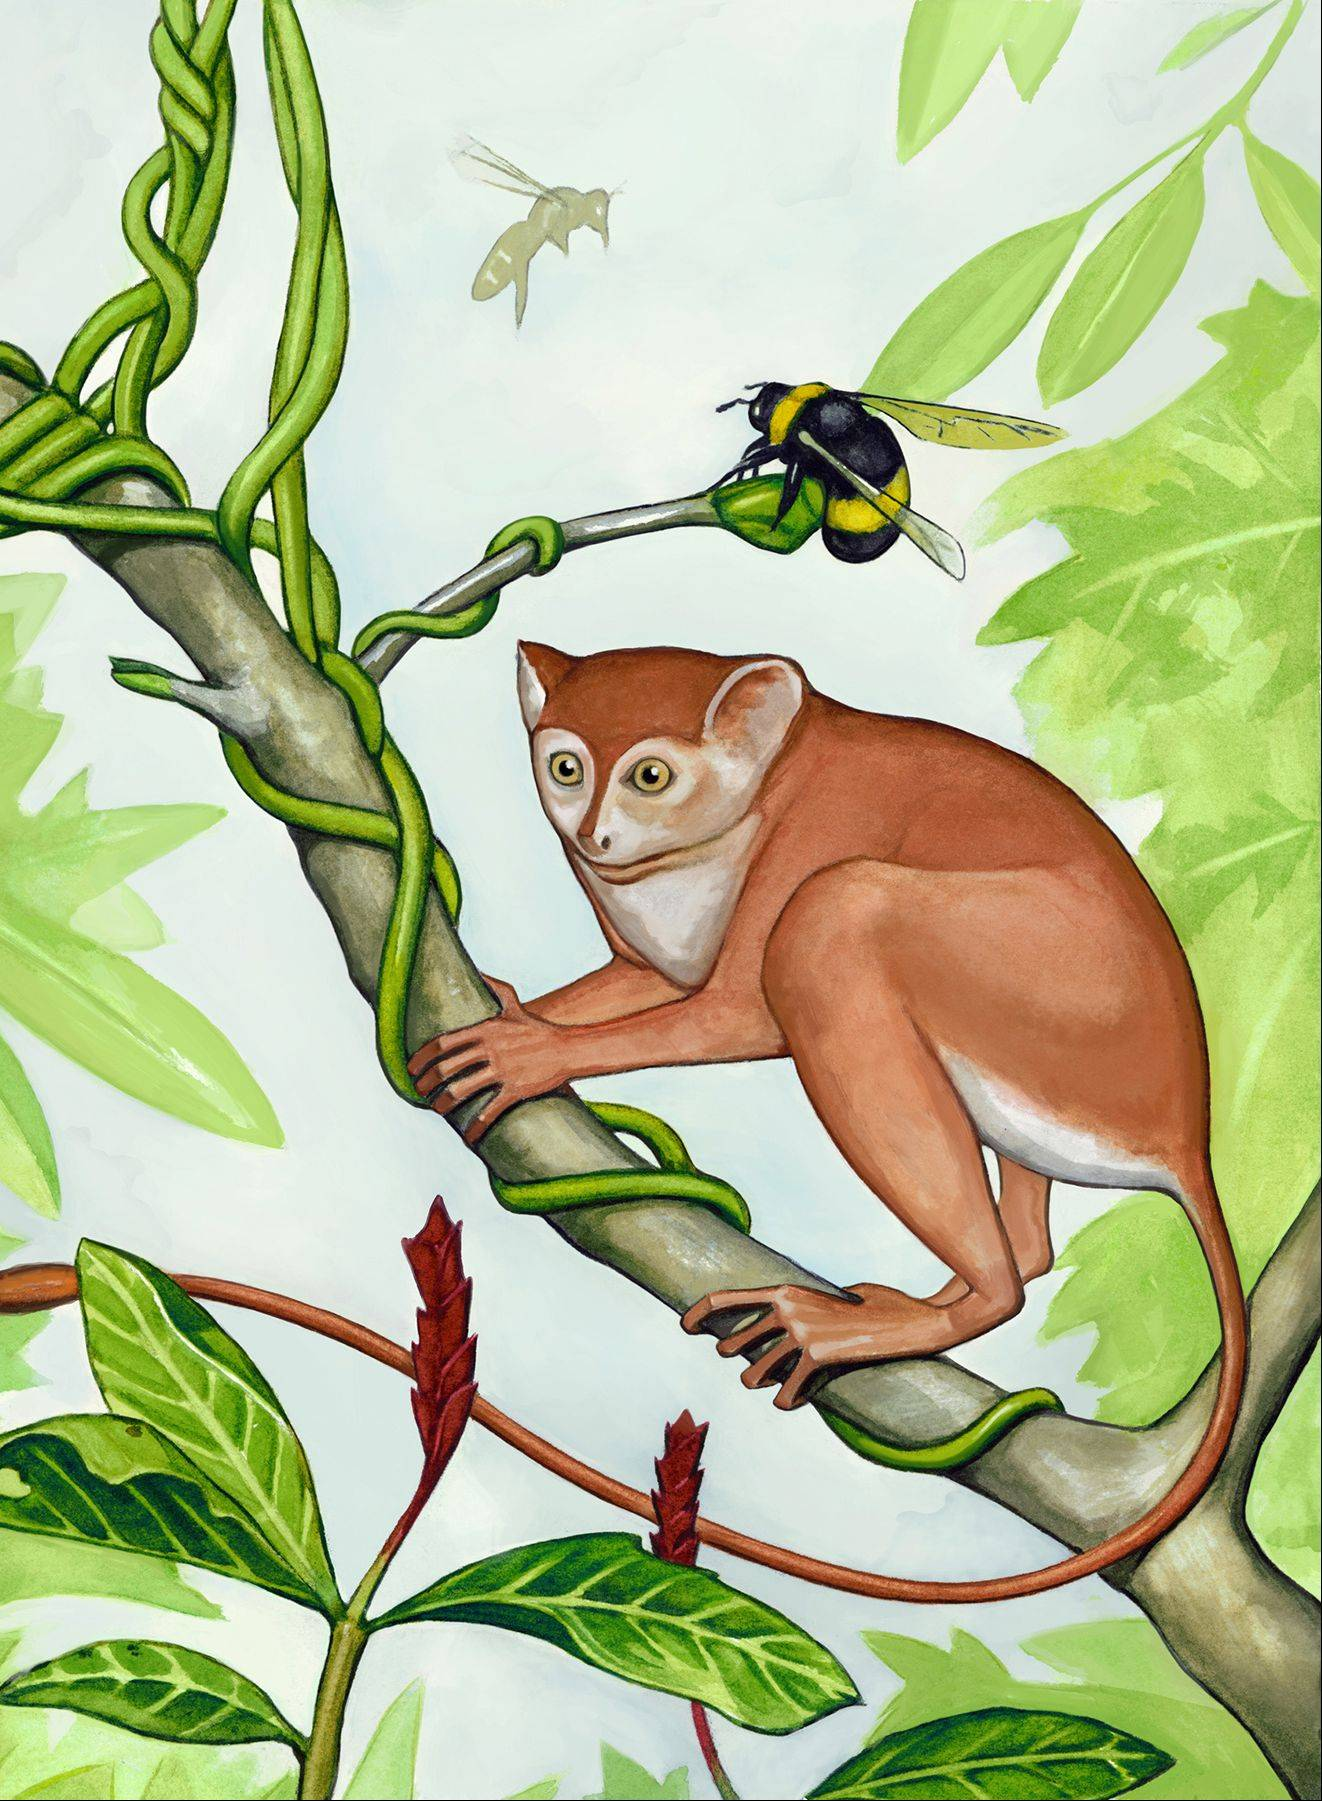 An artist's conception of what the newly discovered primate, Archicebus achilles, might have looked like. Northern Illinois University professor Dan Gebo, of Elgin, was part of the international team that discovered the tiny, 55 million-year-old primate.